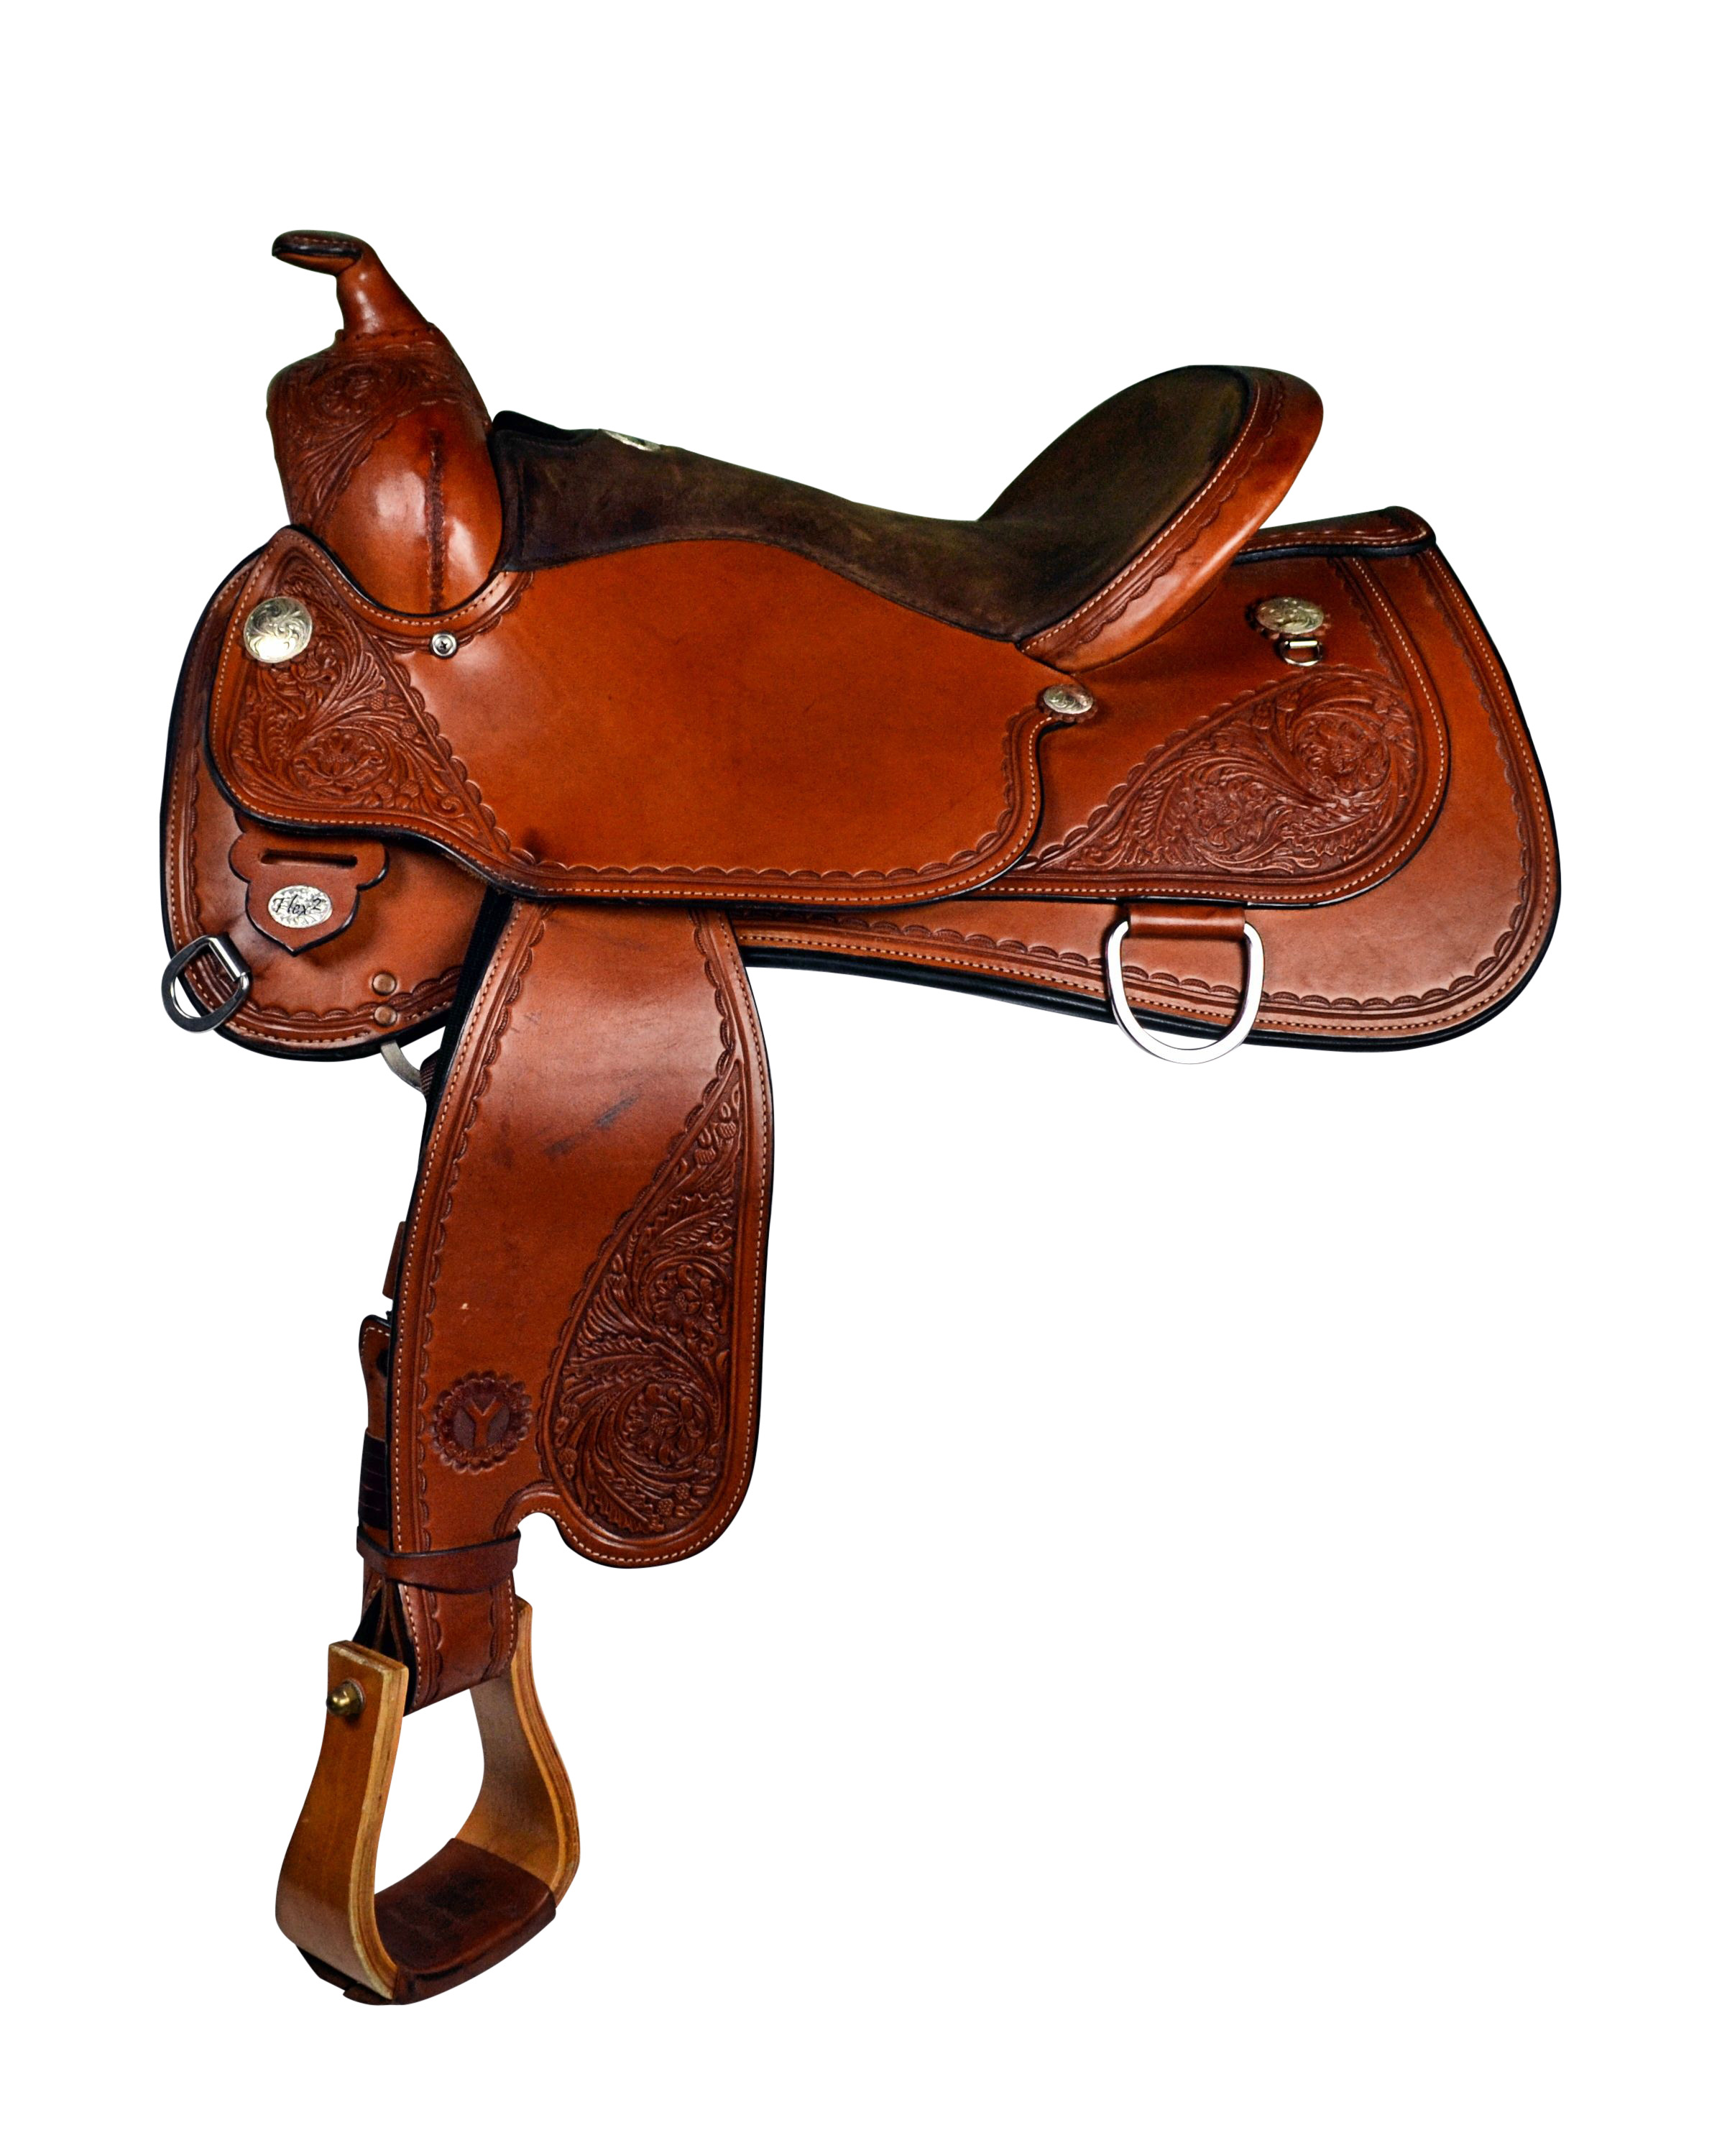 Circle Y Julie Goodnight Sierra Nevada Flex2 Arena Performance Saddle 1560